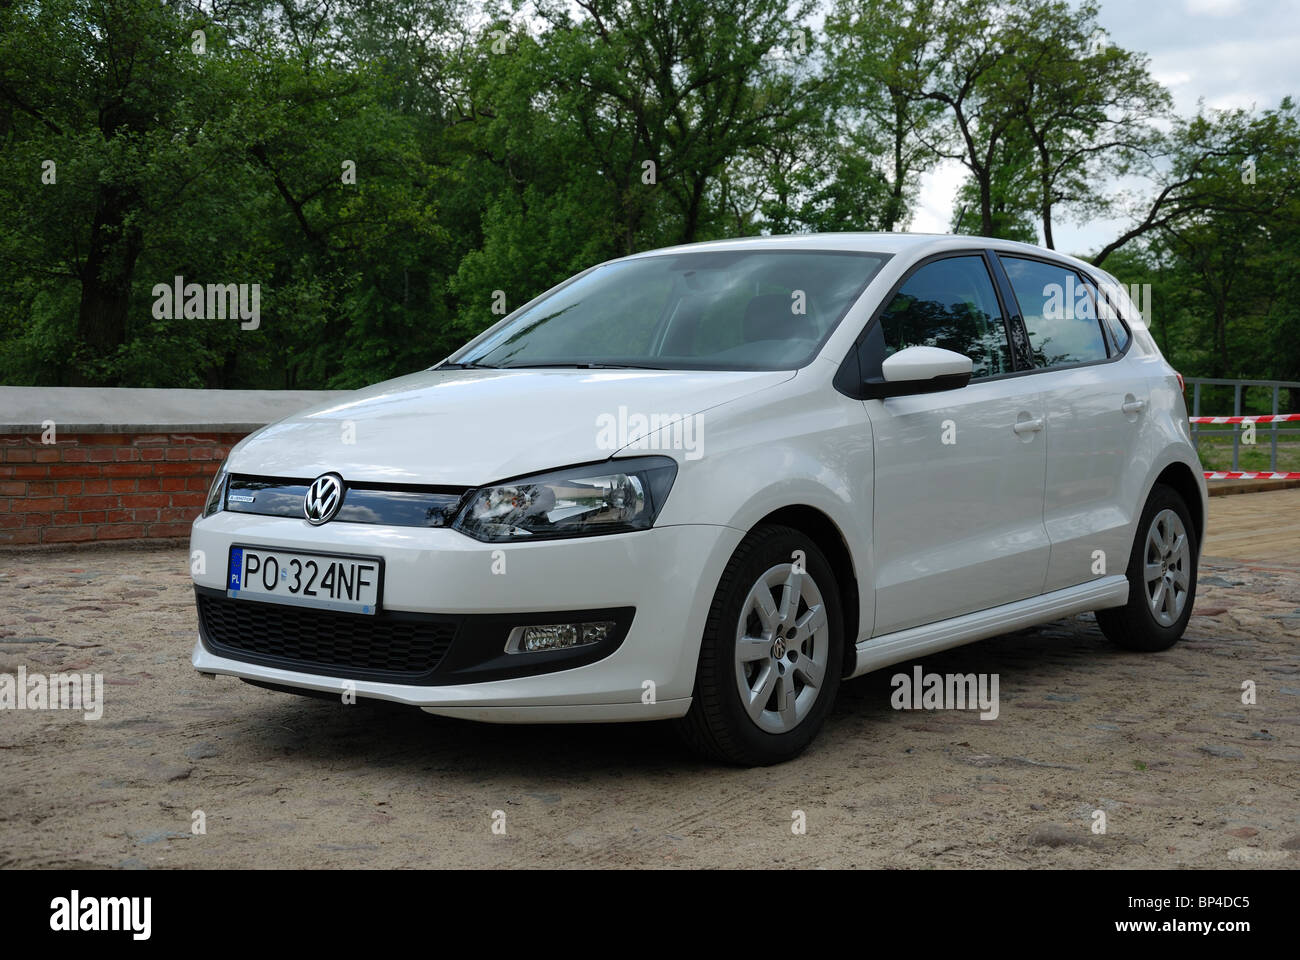 volkswagen polo 1 2 tdi bluemotion my 2010 white. Black Bedroom Furniture Sets. Home Design Ideas